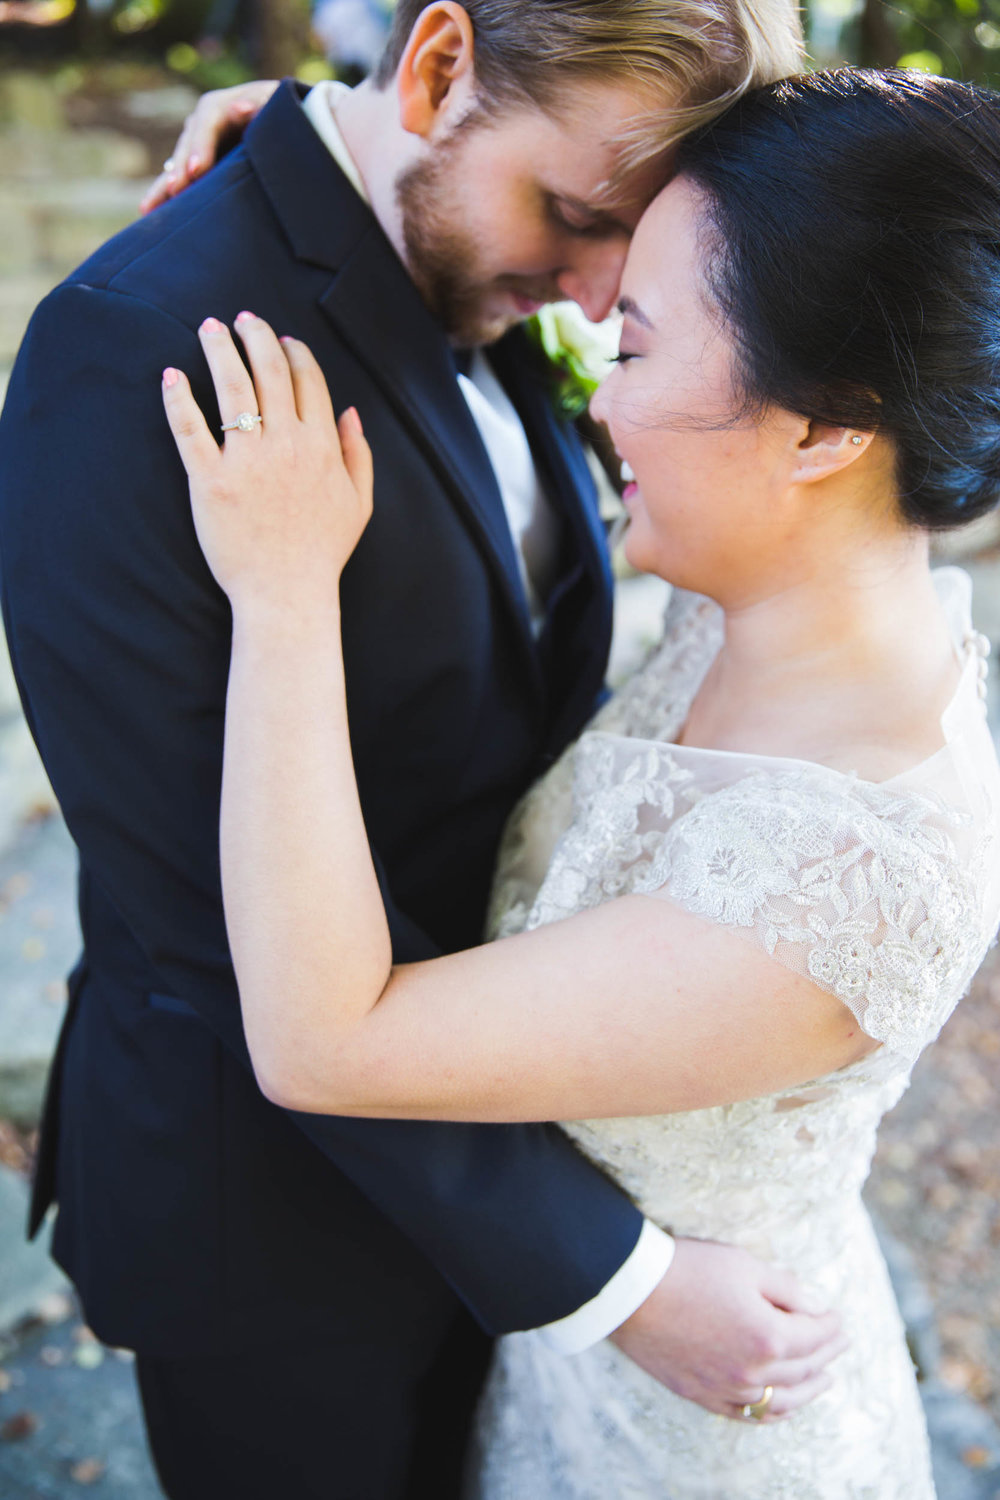 courtney and tom's wedding at pinstripes by anna schultz photography-38.jpg